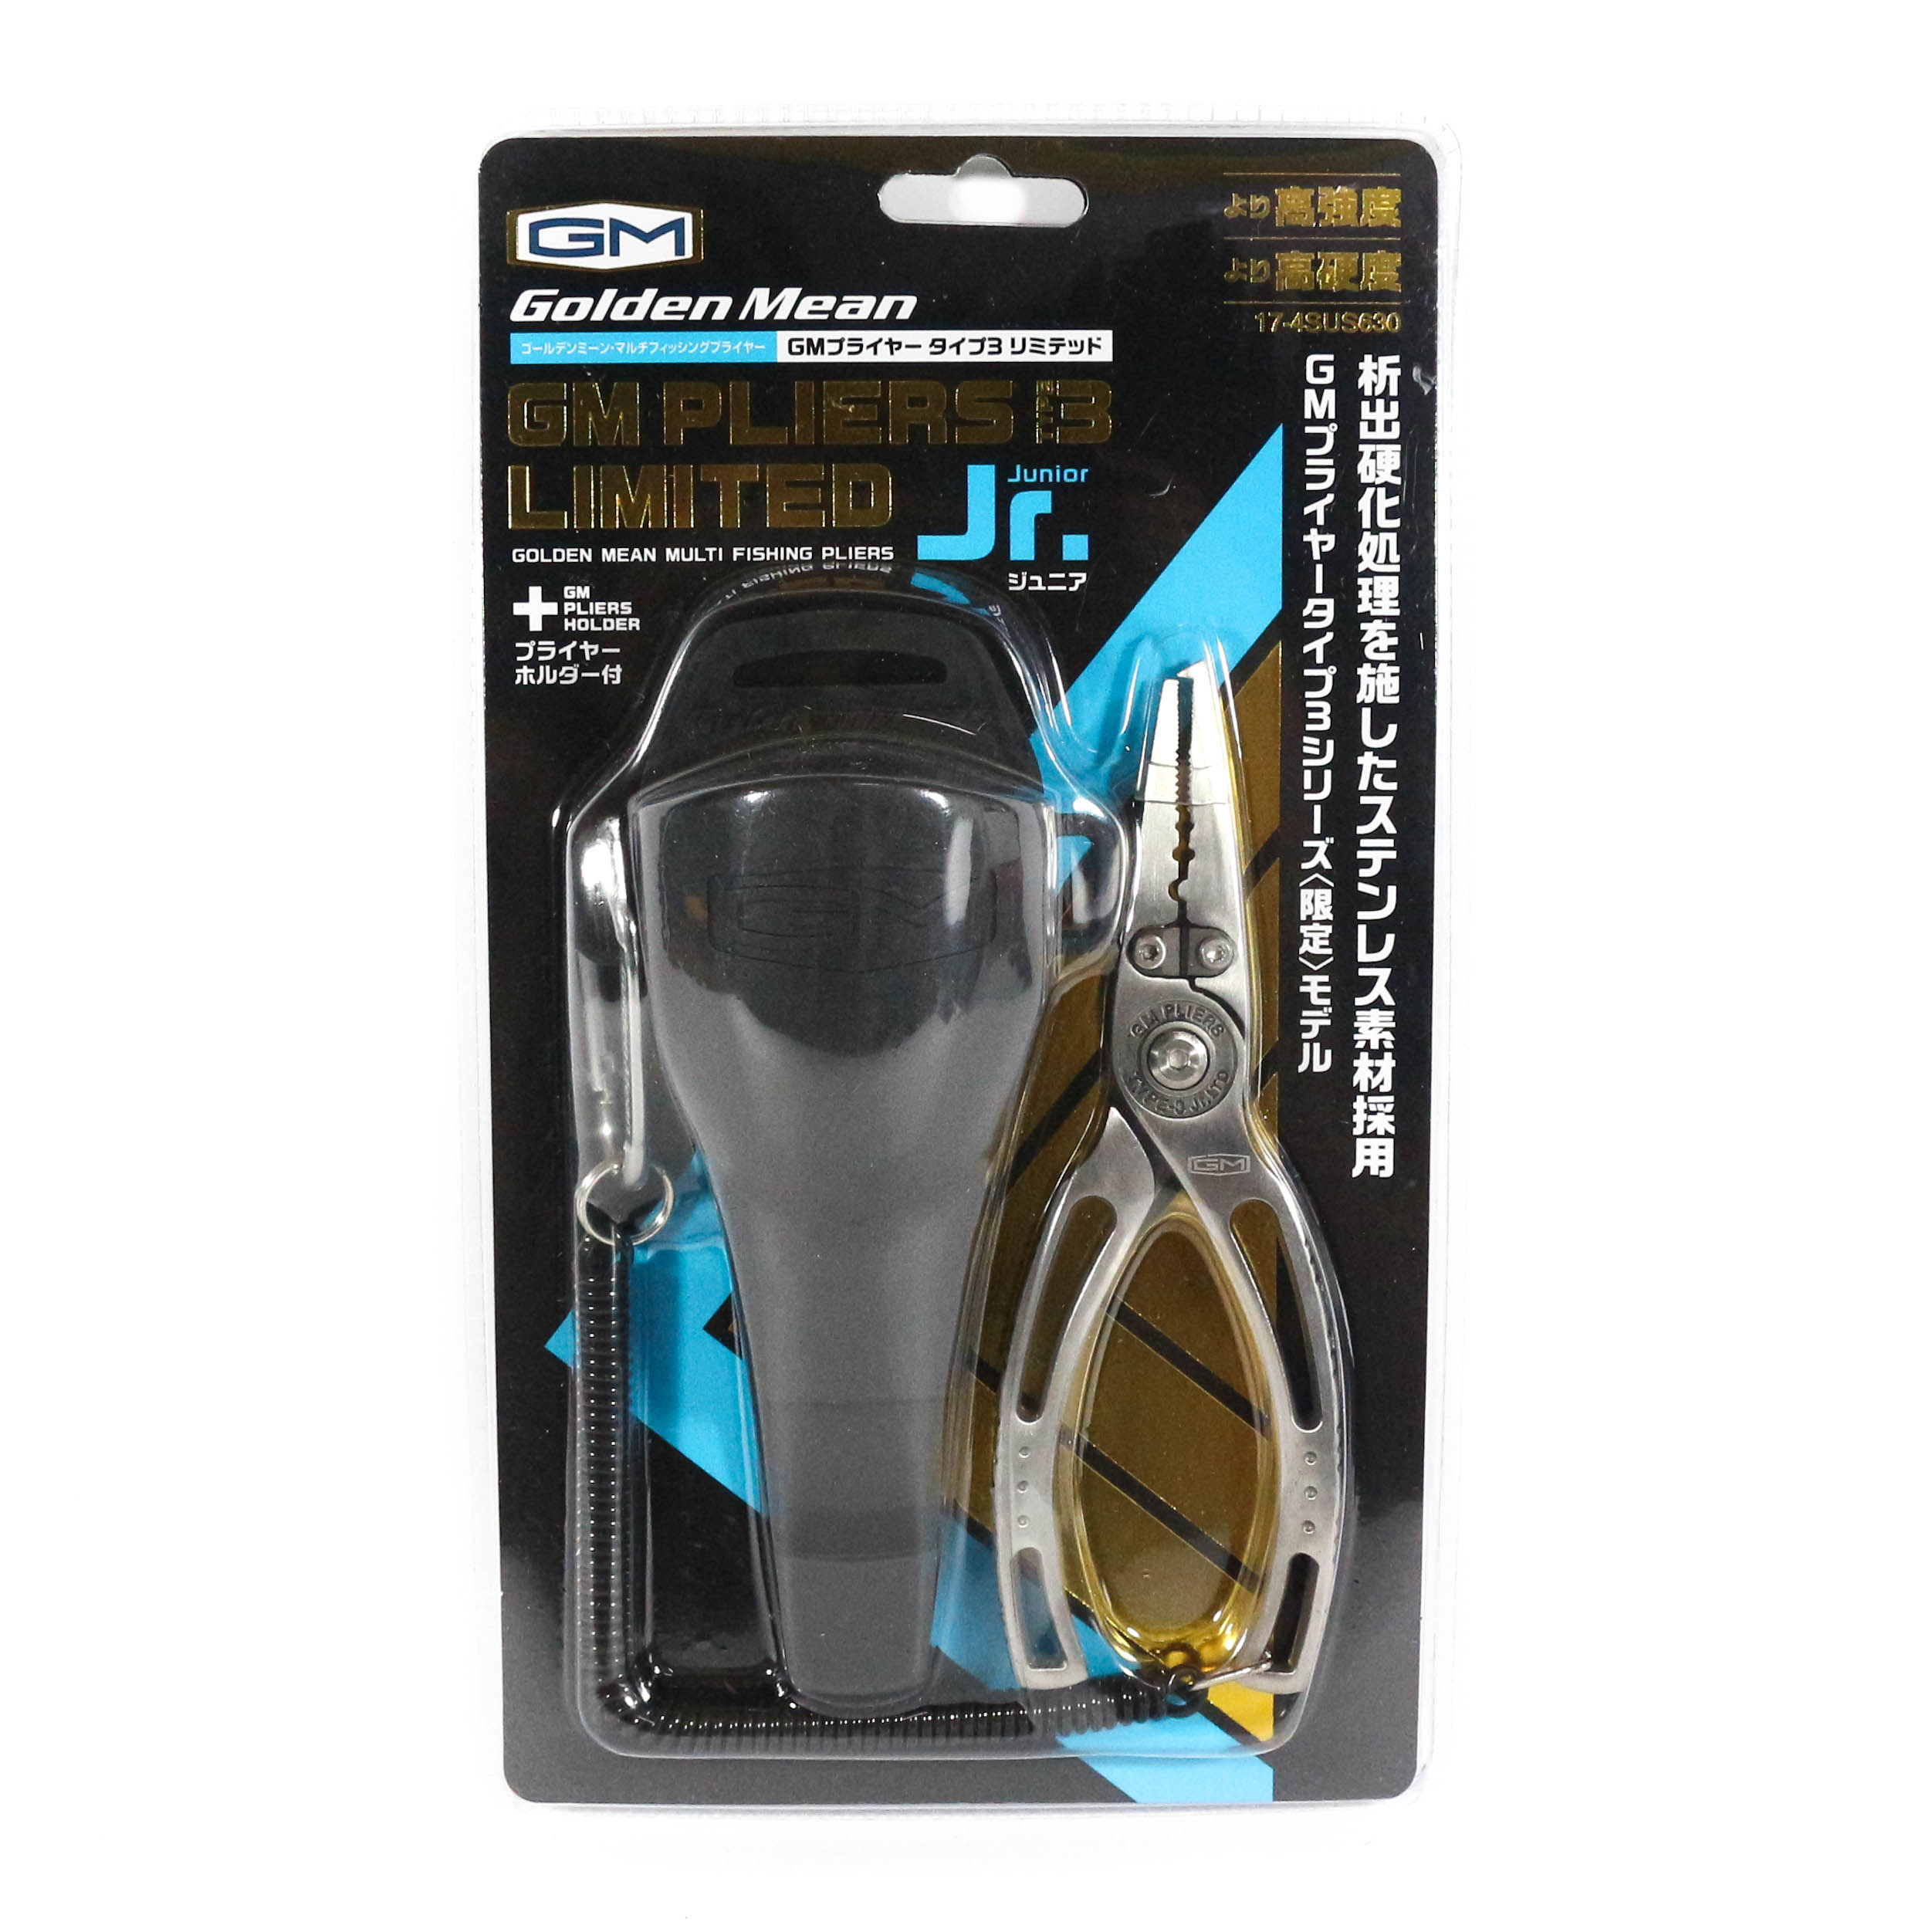 Golden Mean Fishing Pliers and Holder Type 3 Limited JR (4347)